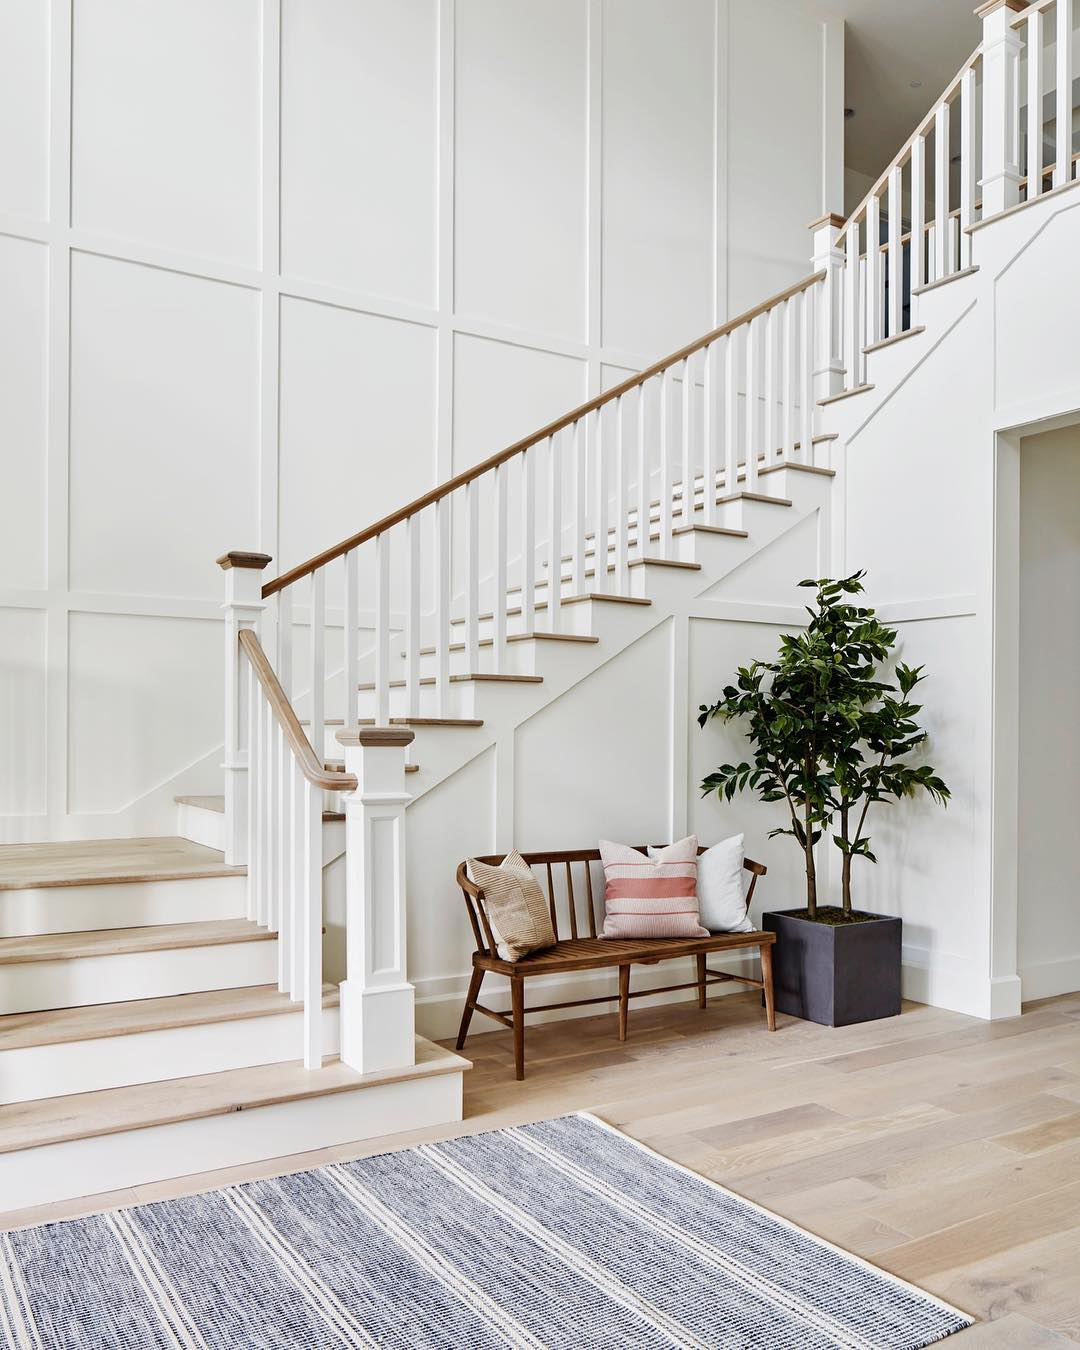 Entryway with Staircase via @aft_construction